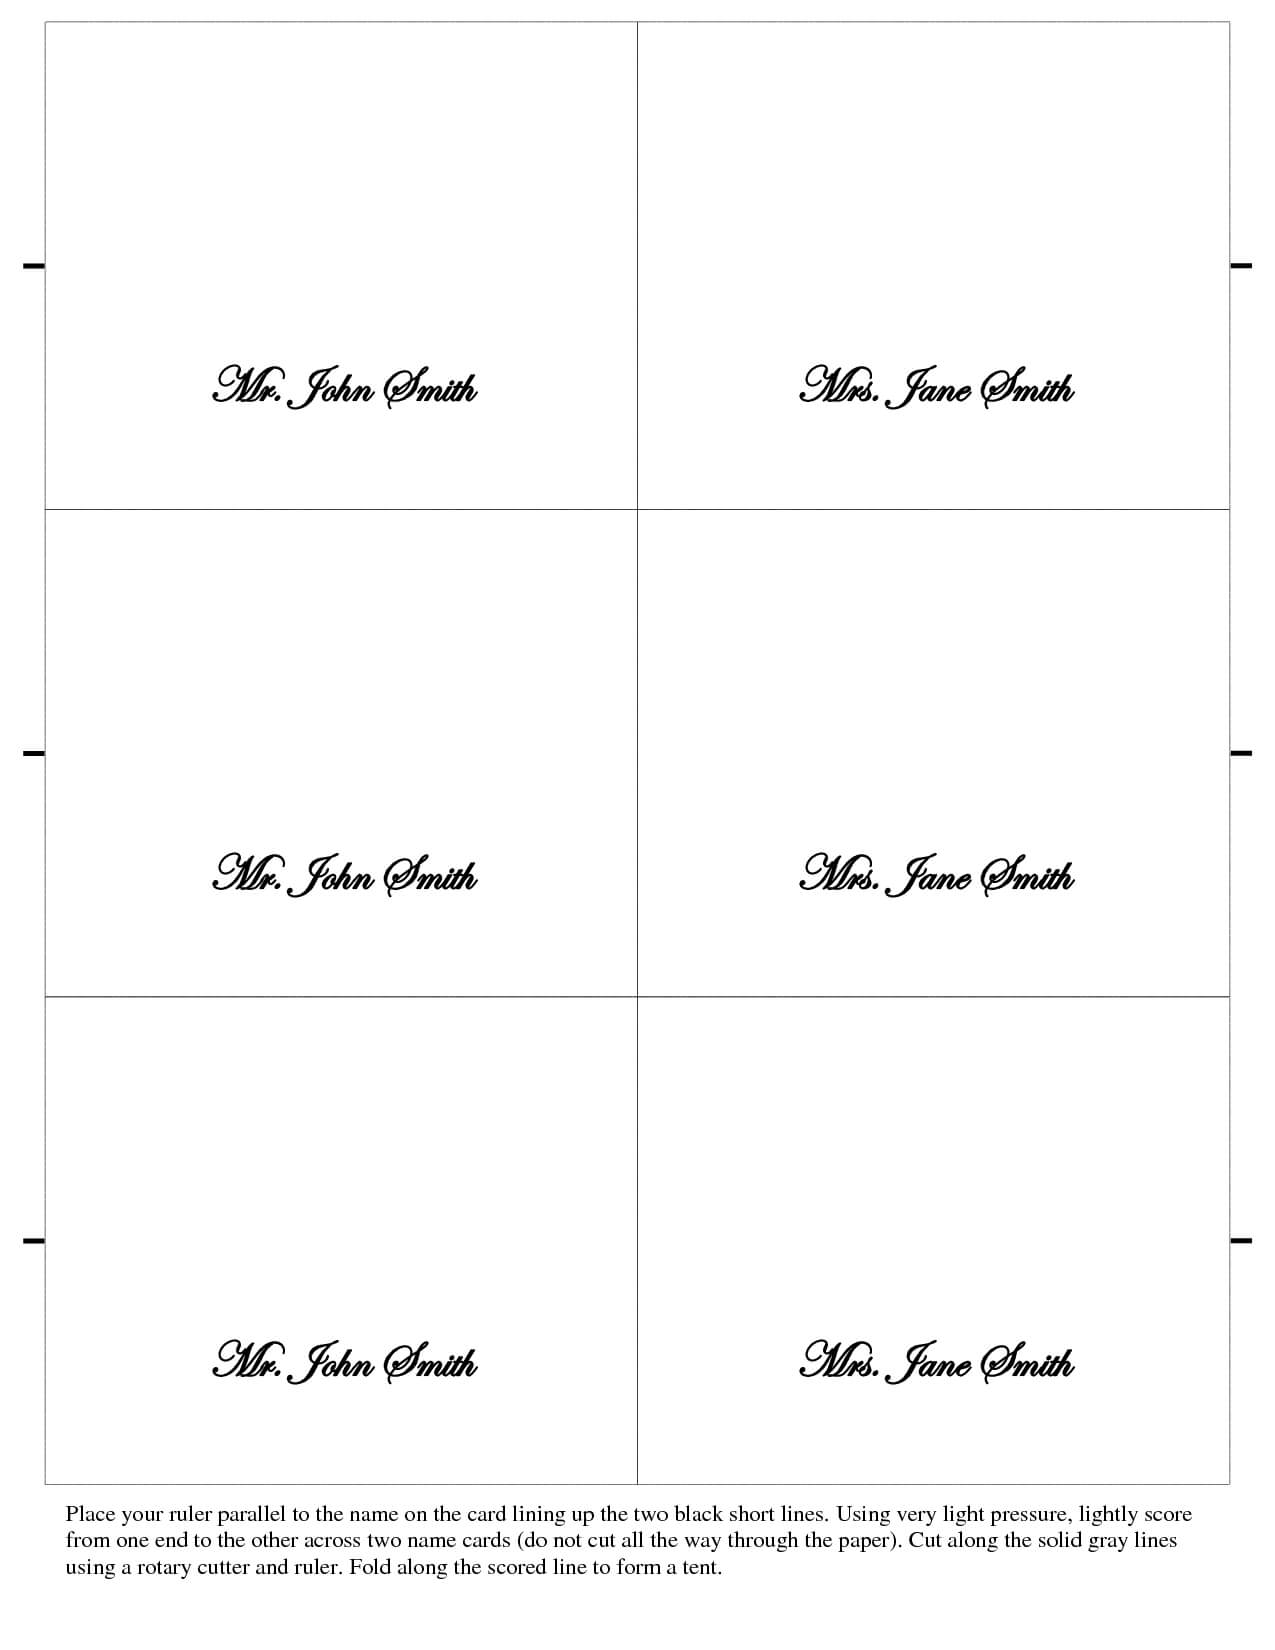 Free Place Card Templates 6 Per Page - Atlantaauctionco In Free Place Card Templates 6 Per Page